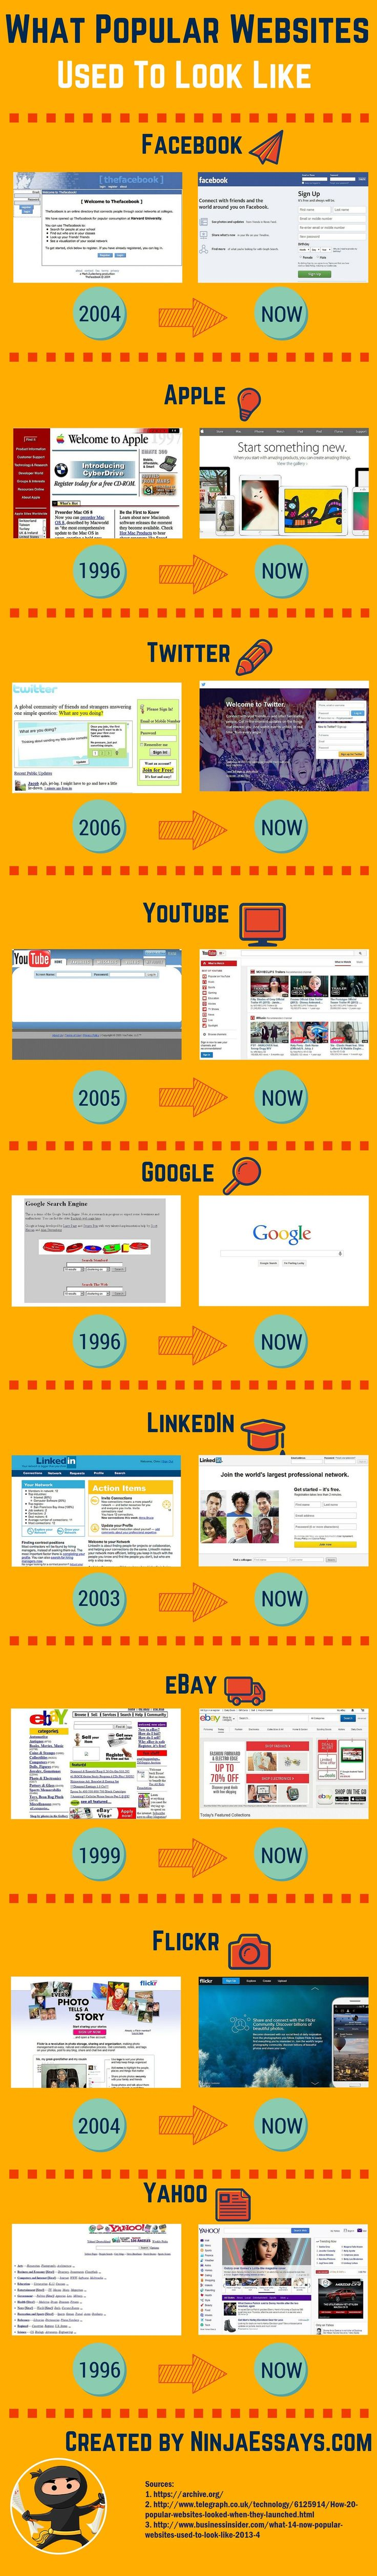 Call it the yearbook of websites. This infographic compares what some of our favorite websites looked like in their first iterations with how they look now.